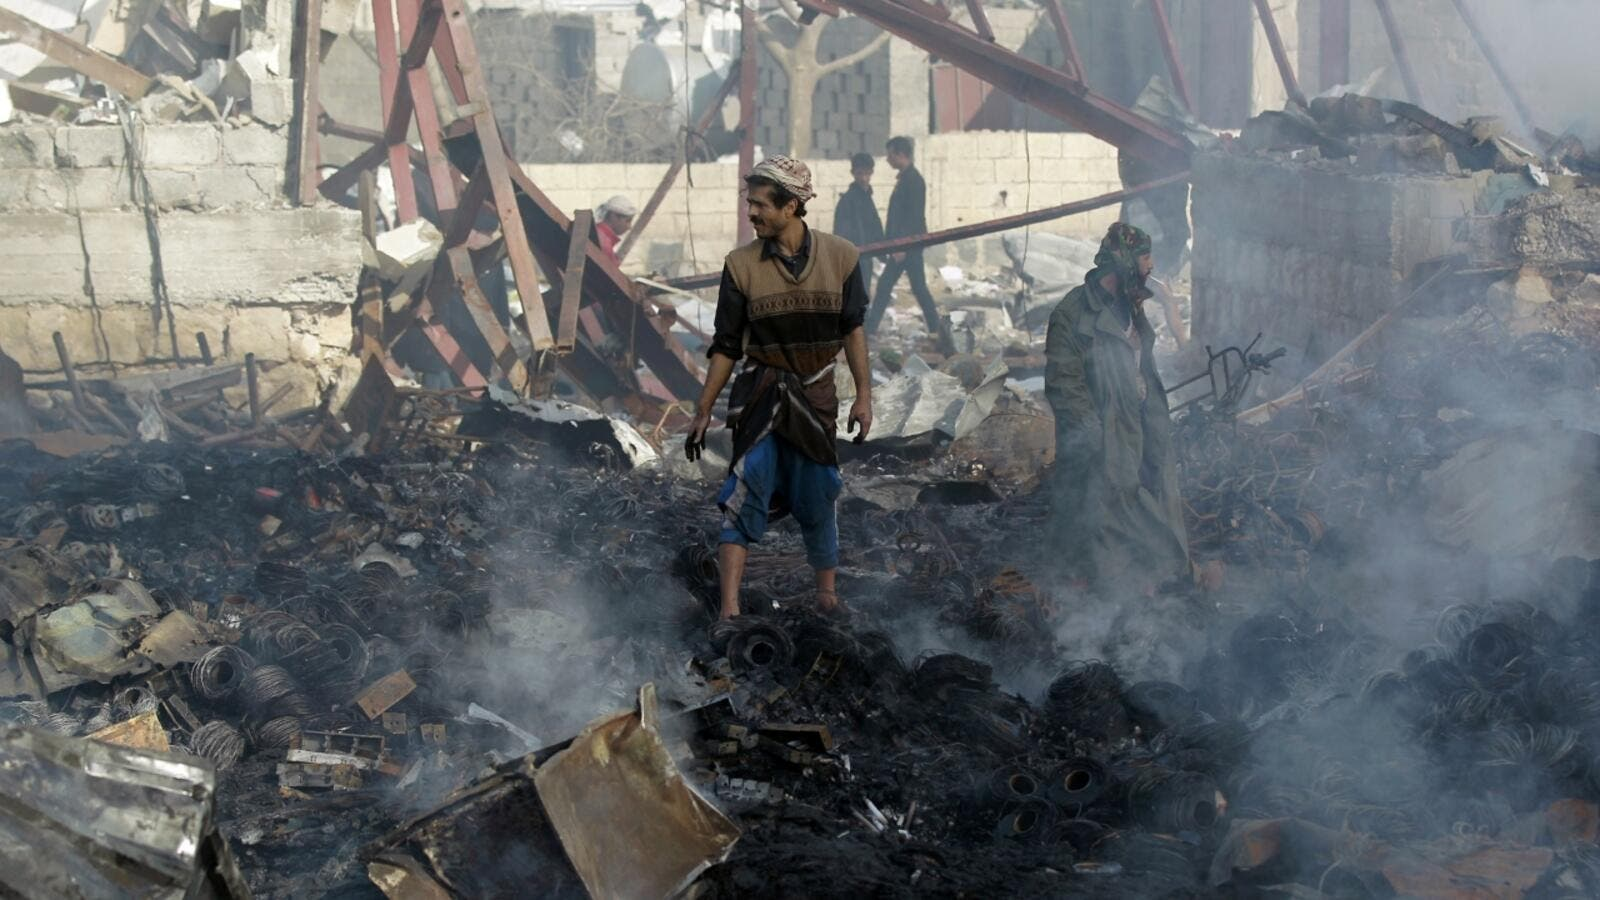 Saudi Arabia has targeted Yemen with airstrikes on an almost daily basis. (AFP/File)